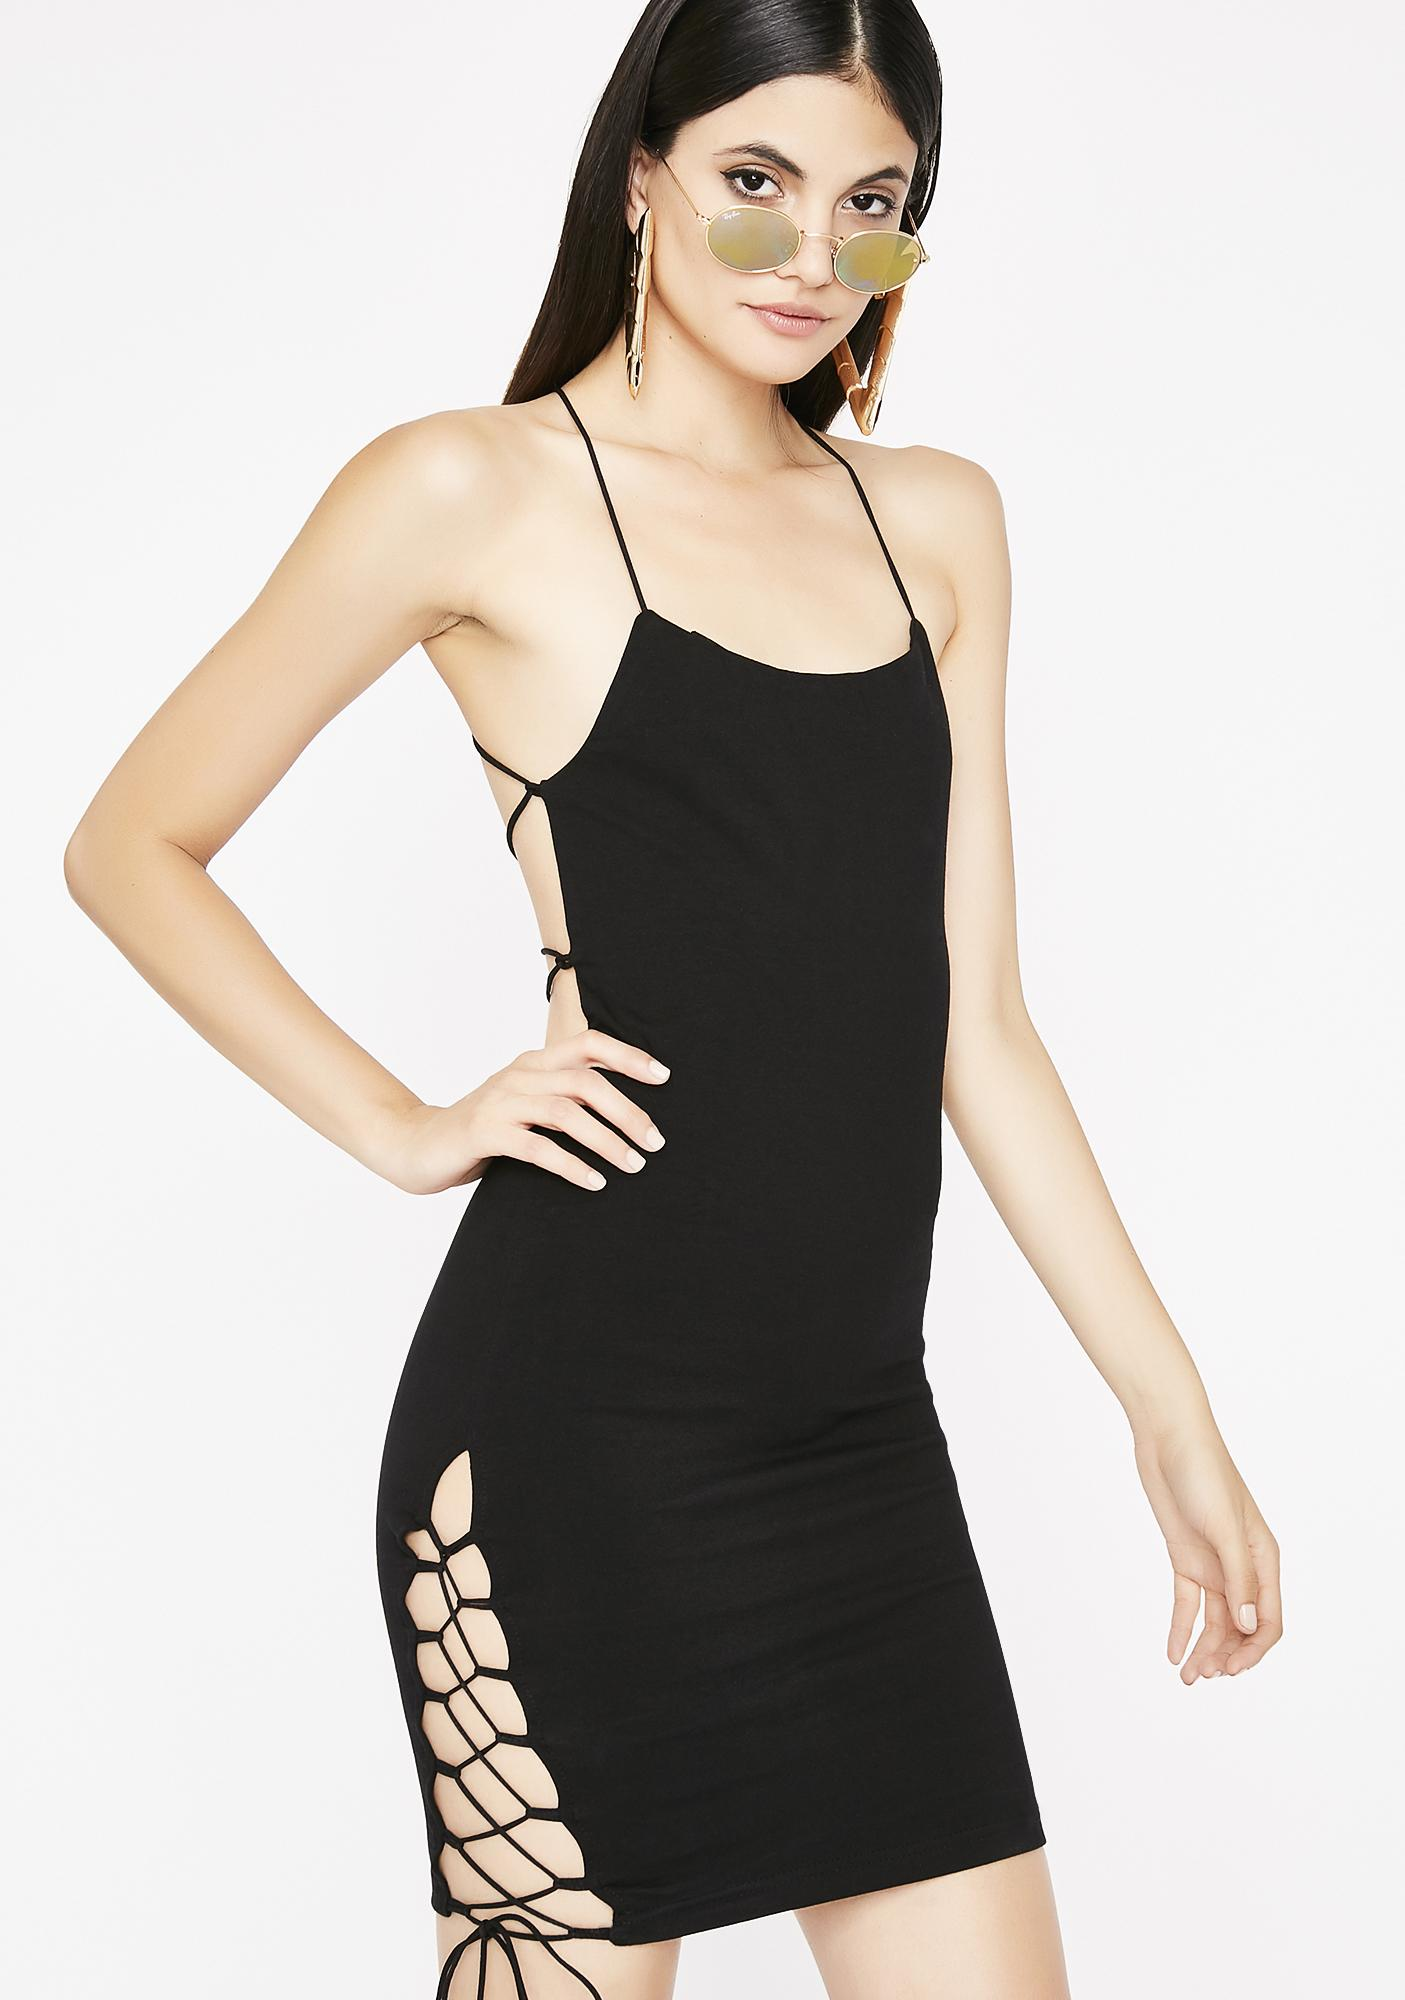 Get Em Hooked Strappy Dress